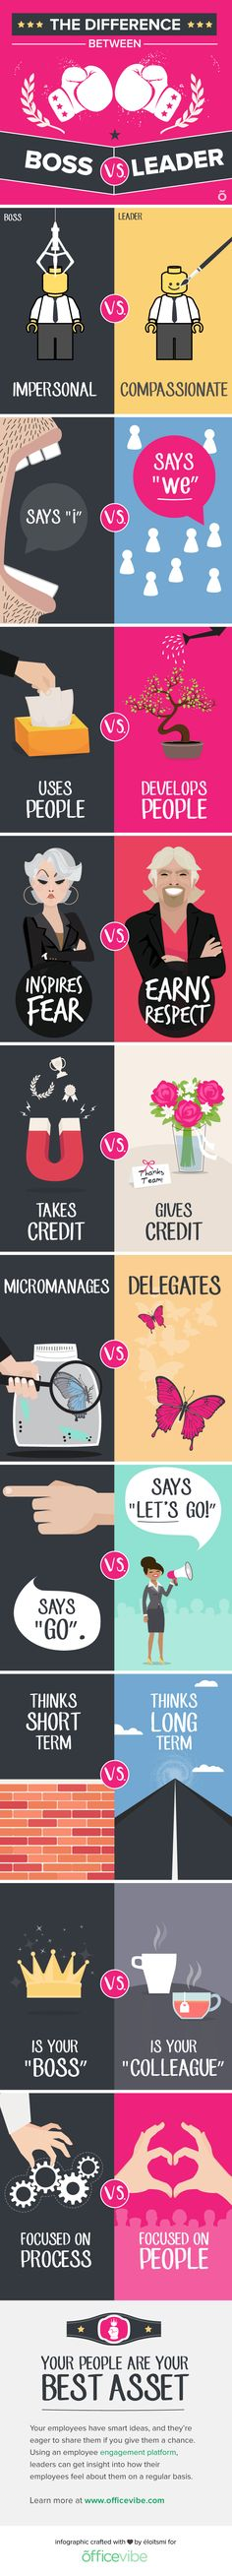 The Difference Between A Boss And A Leader (Infographic)